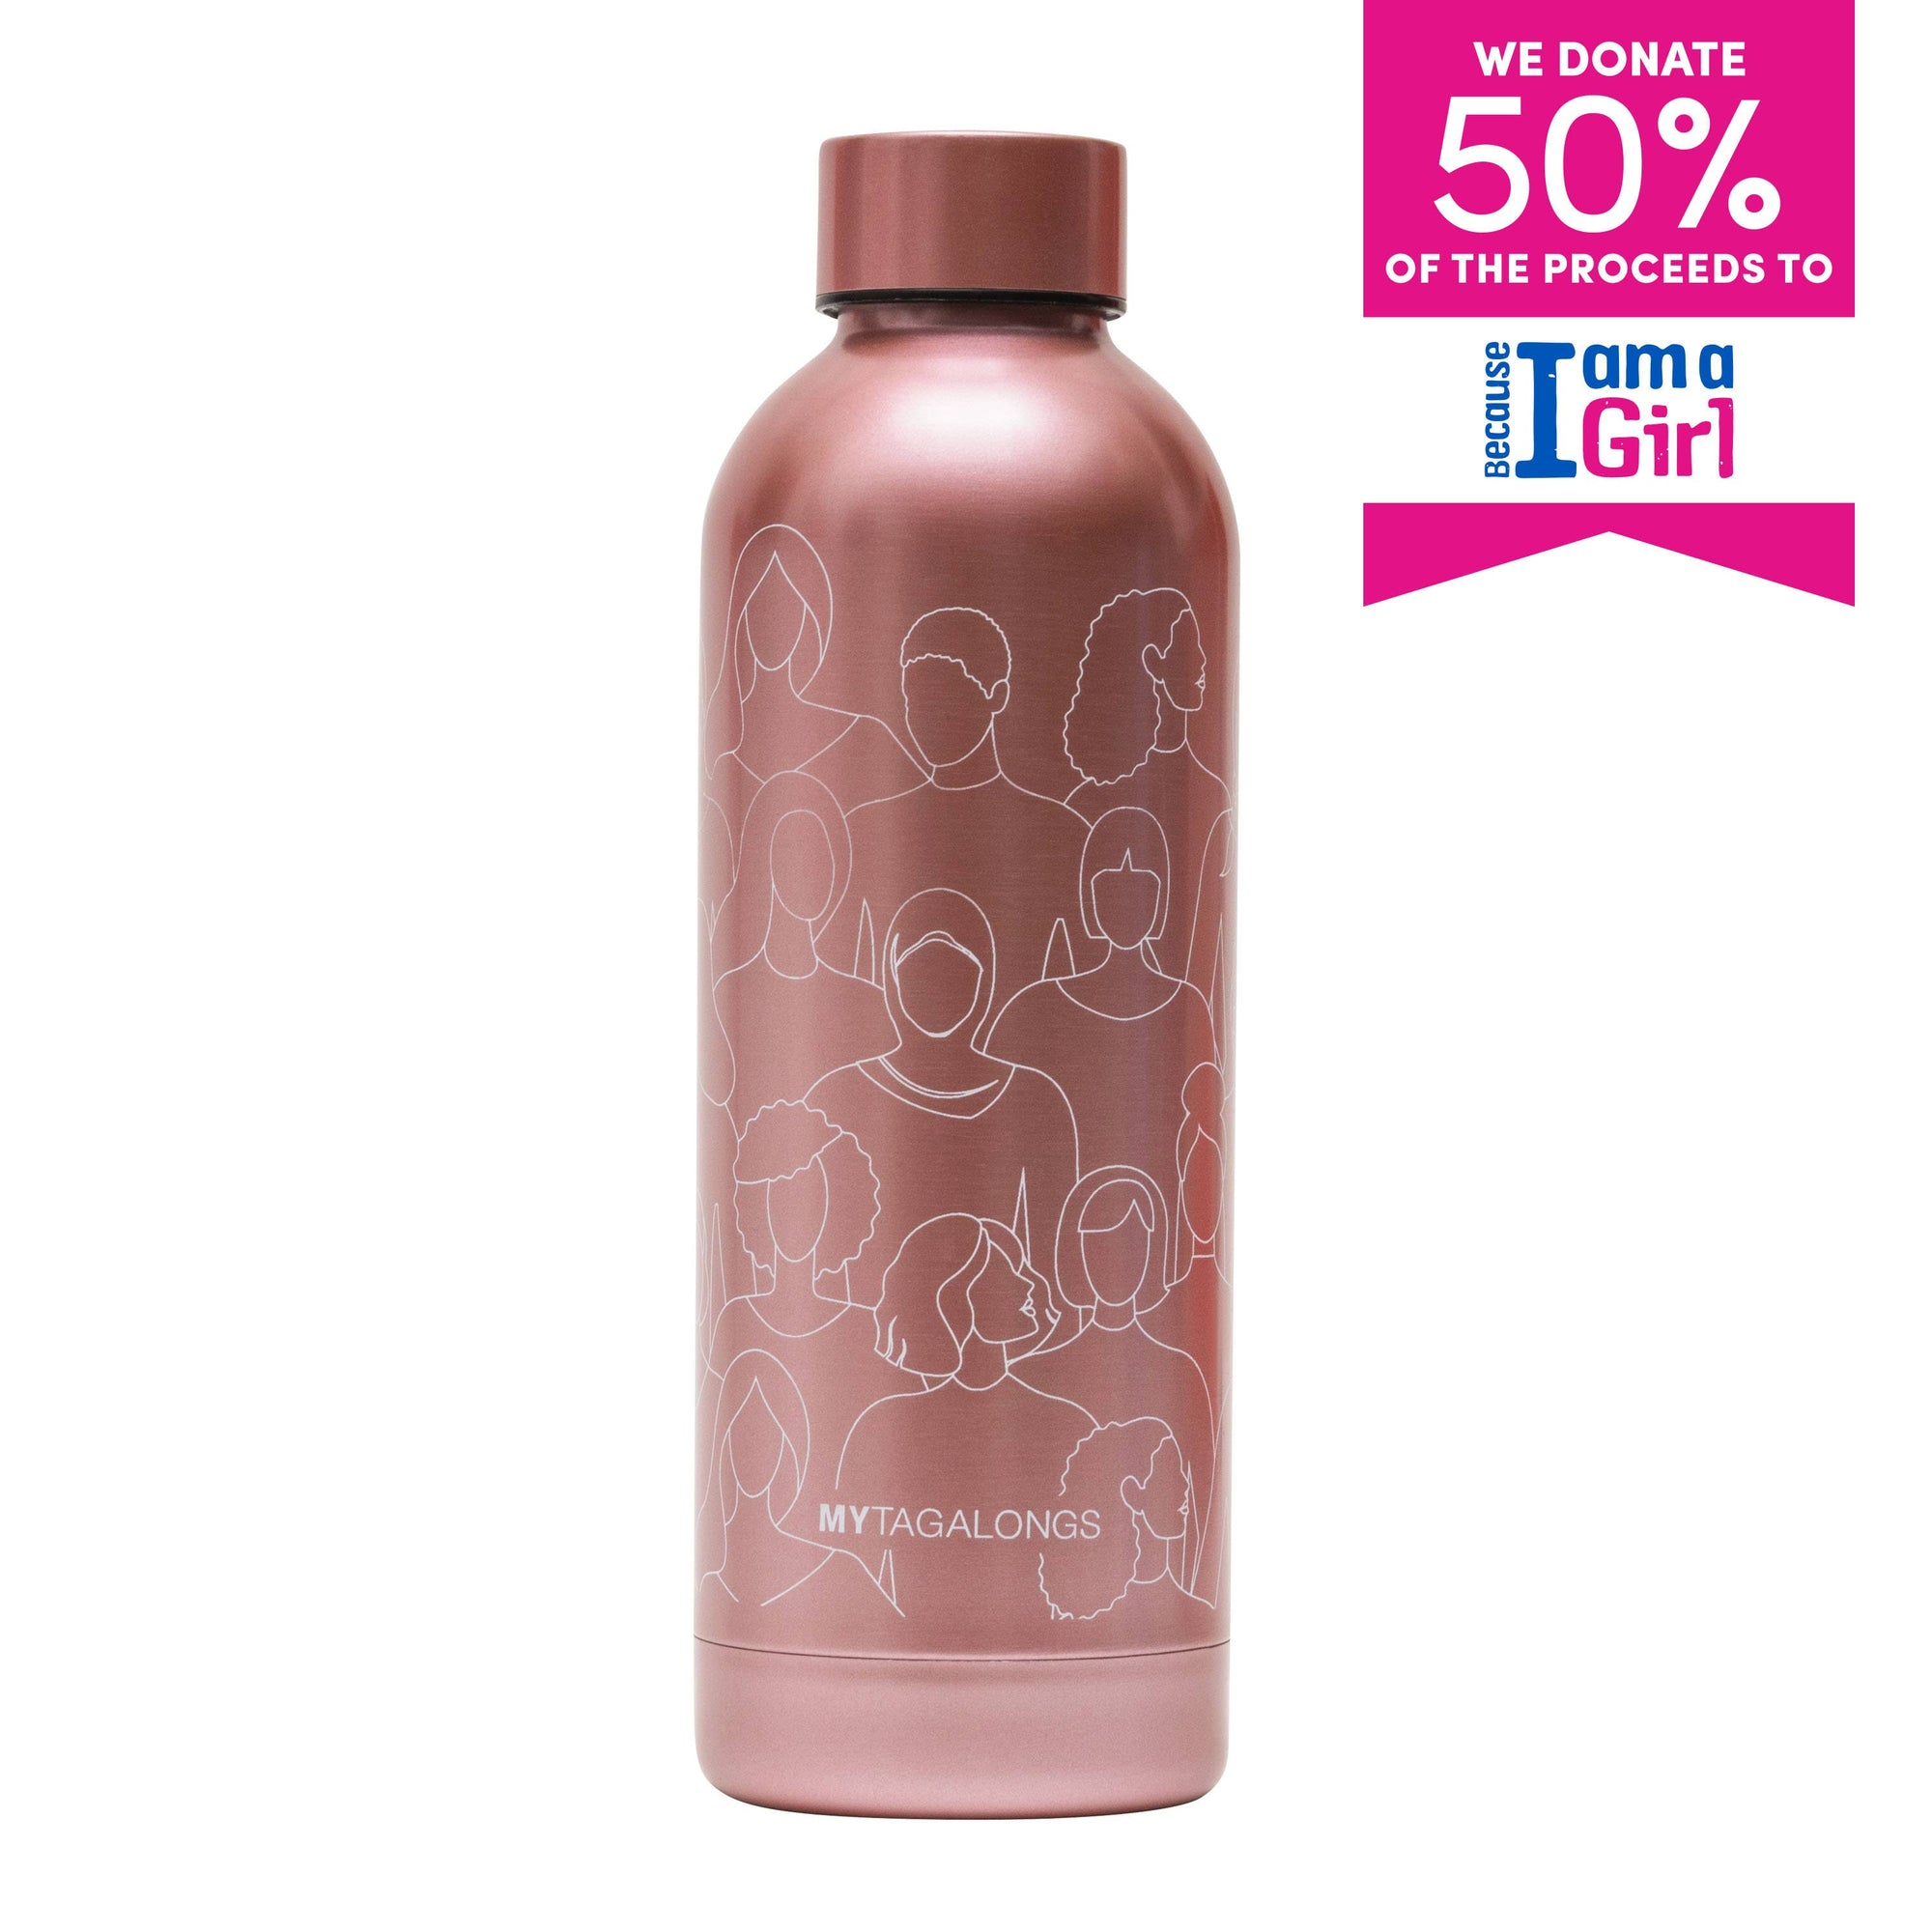 WATER BOTTLE - BECAUSE I AM A GIRL PINK Dim Gray MYTAGALONGS